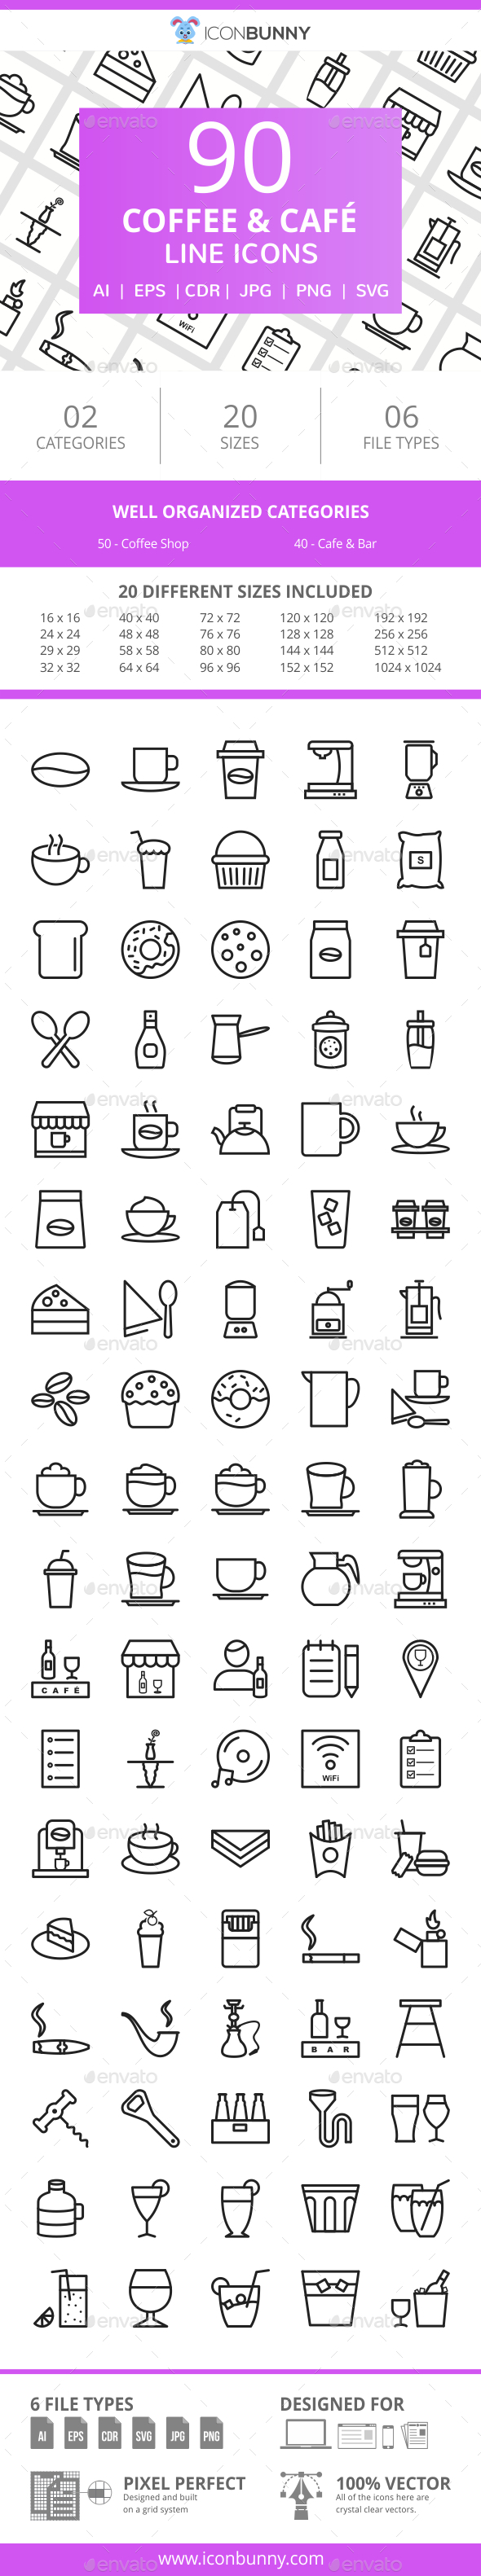 90 Coffee & Cafe Line Icons - Icons